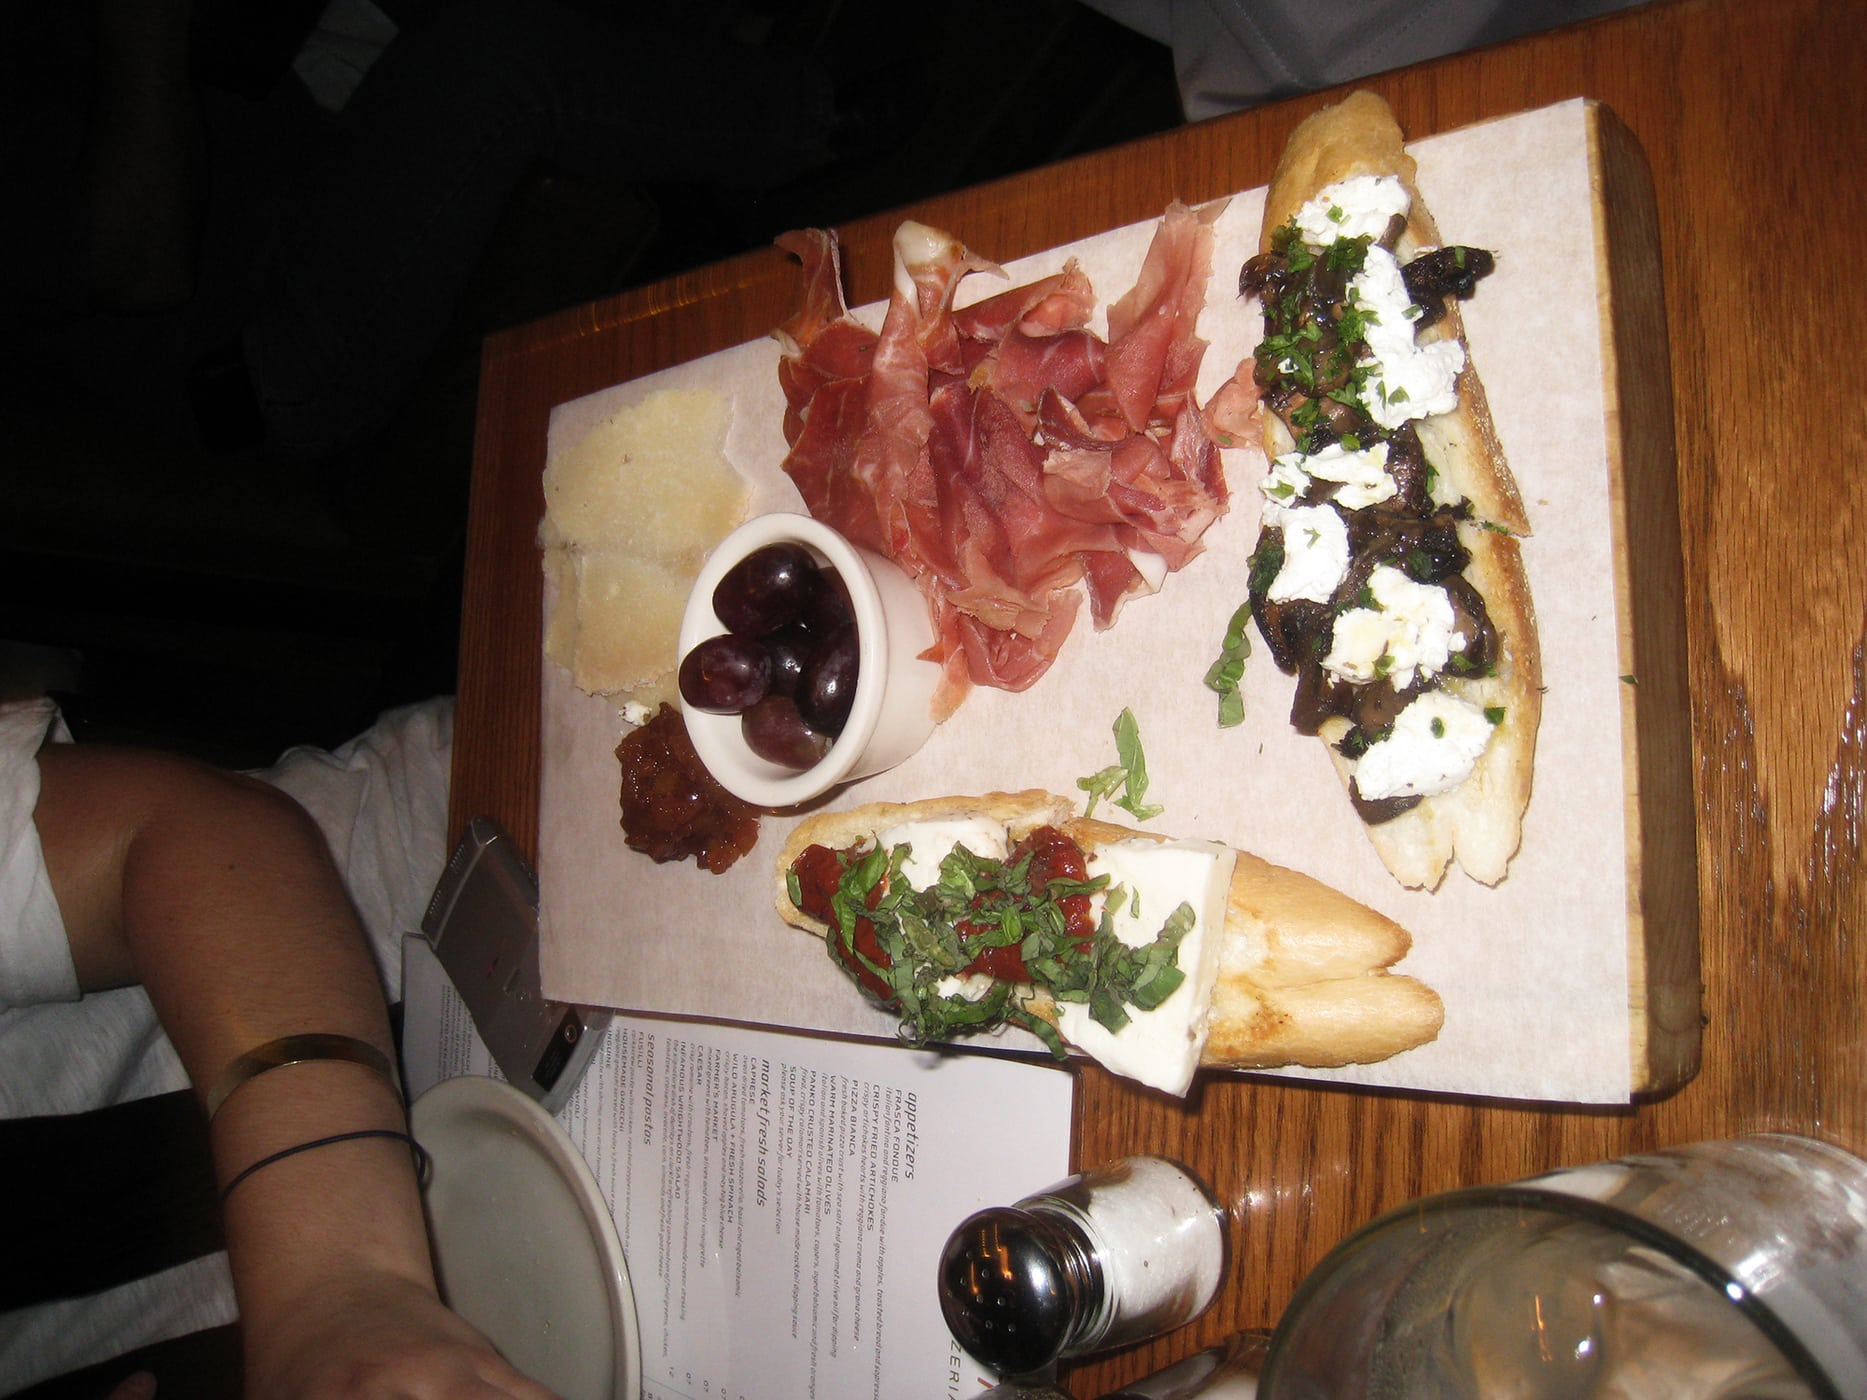 cheese, bruschetta, and meta plate from Frasca